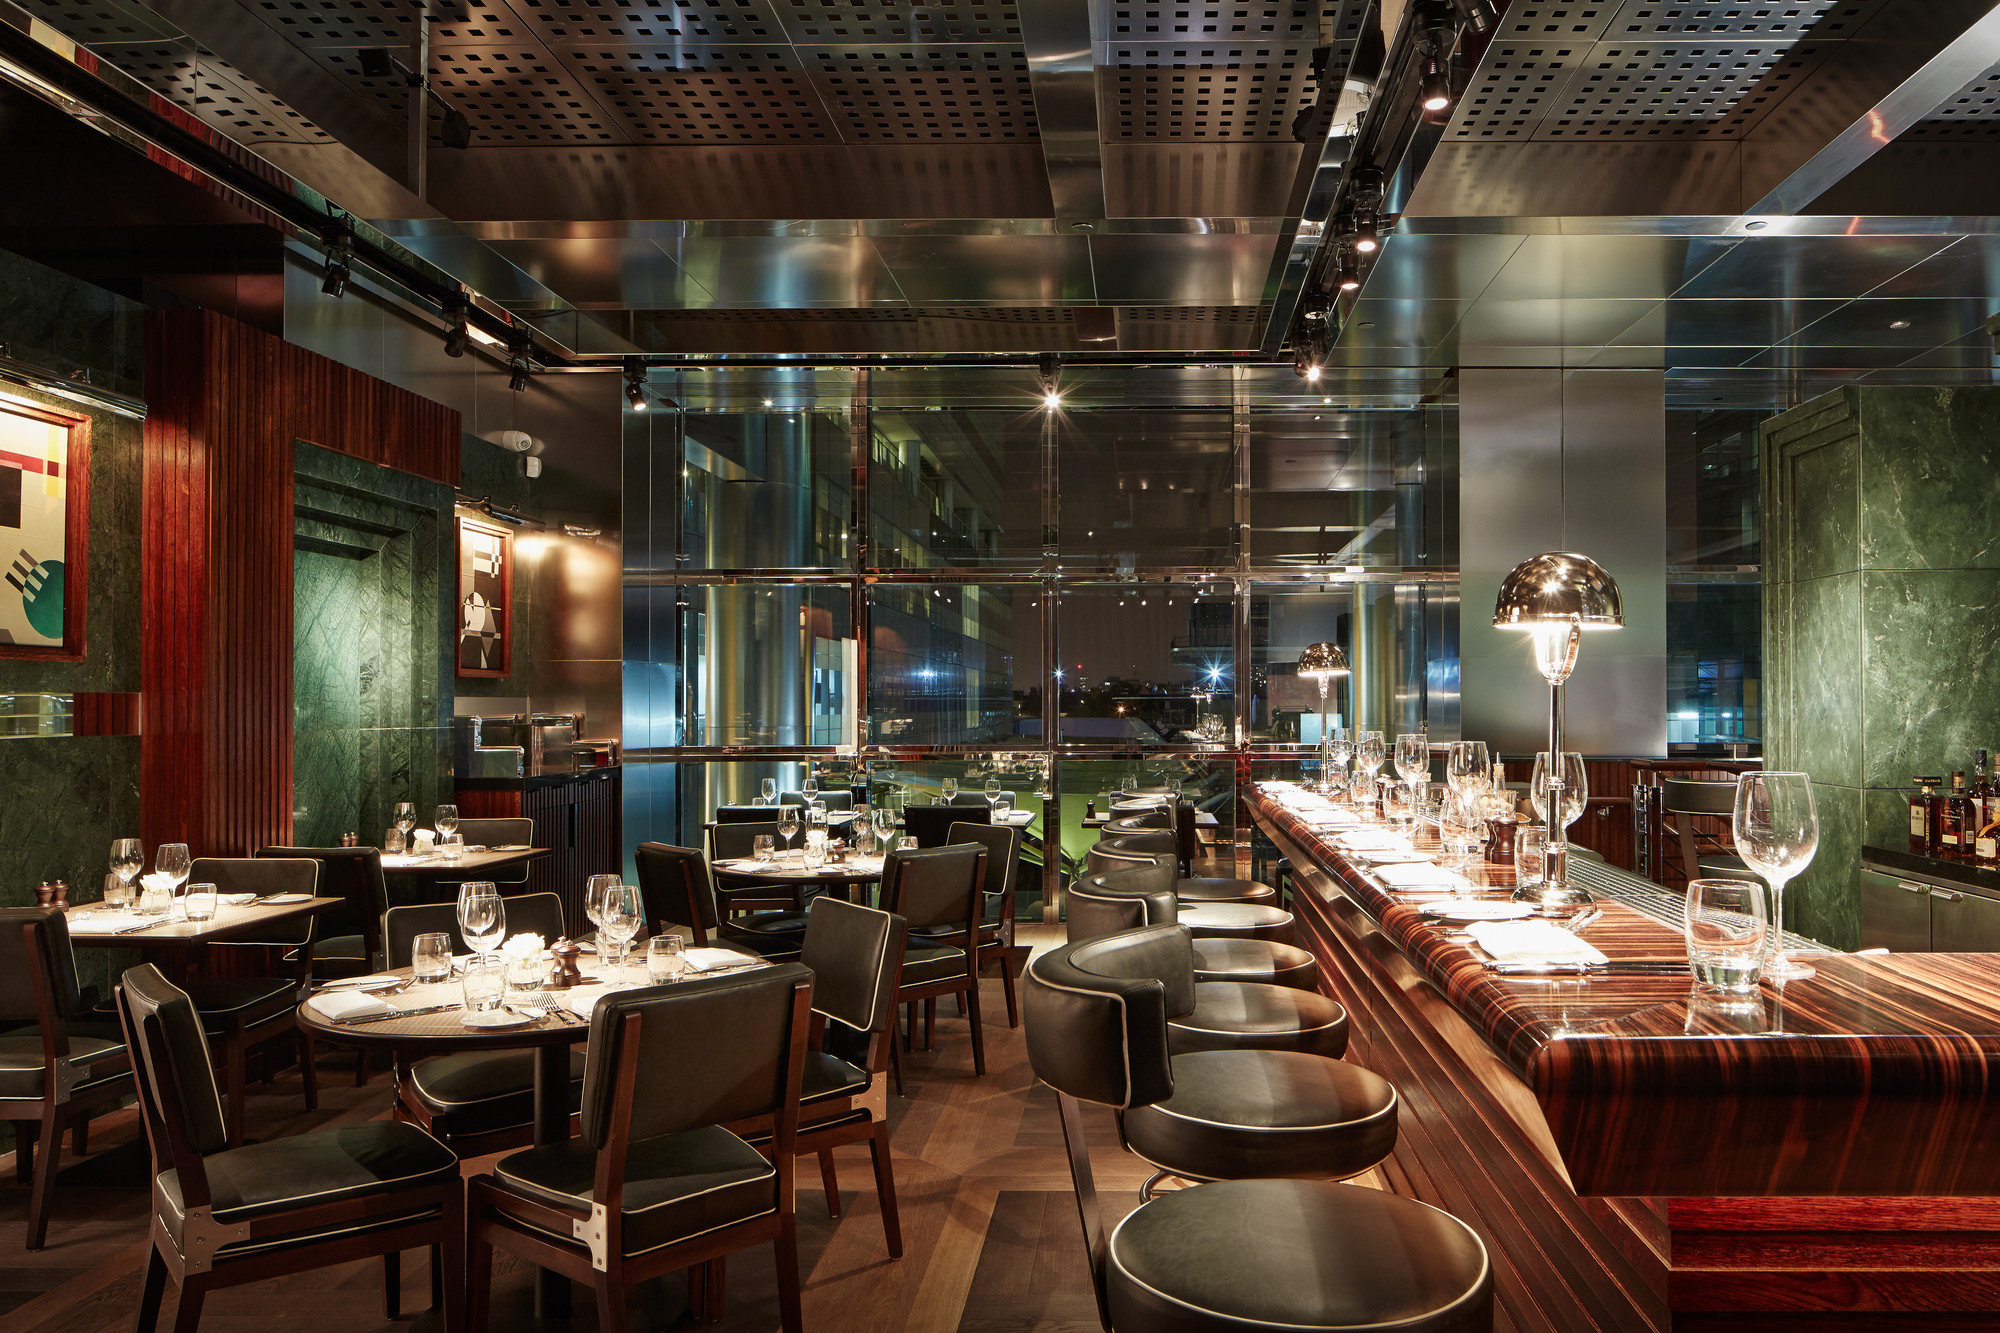 Restaurant/Bar In A Retail Space: One Canada Square (London) / David